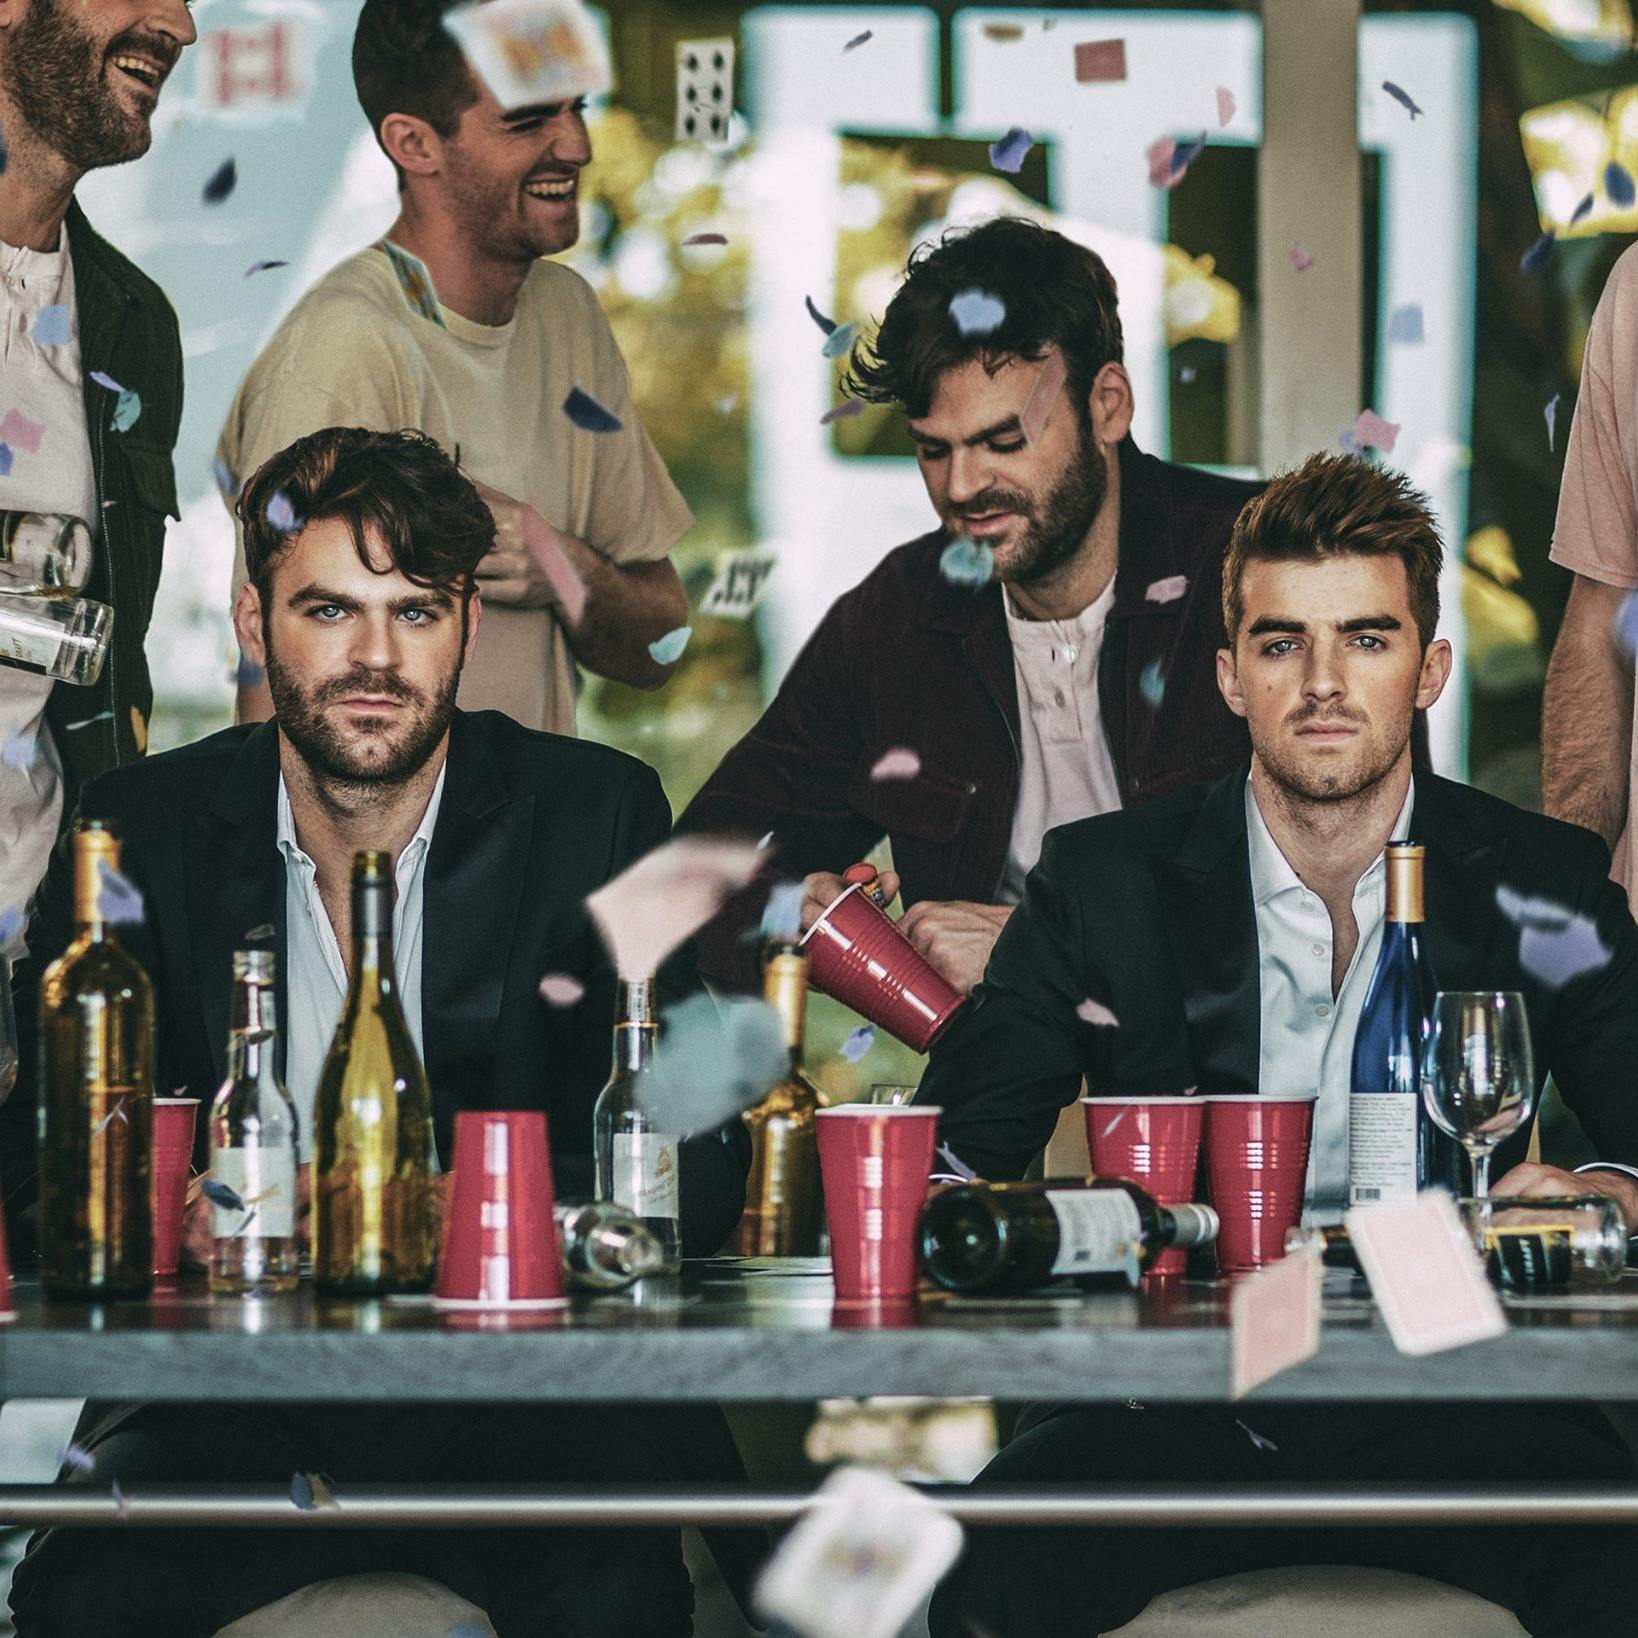 Billets The Chainsmokers - European Tour 2021 (Ziggo Dome - Amsterdam)